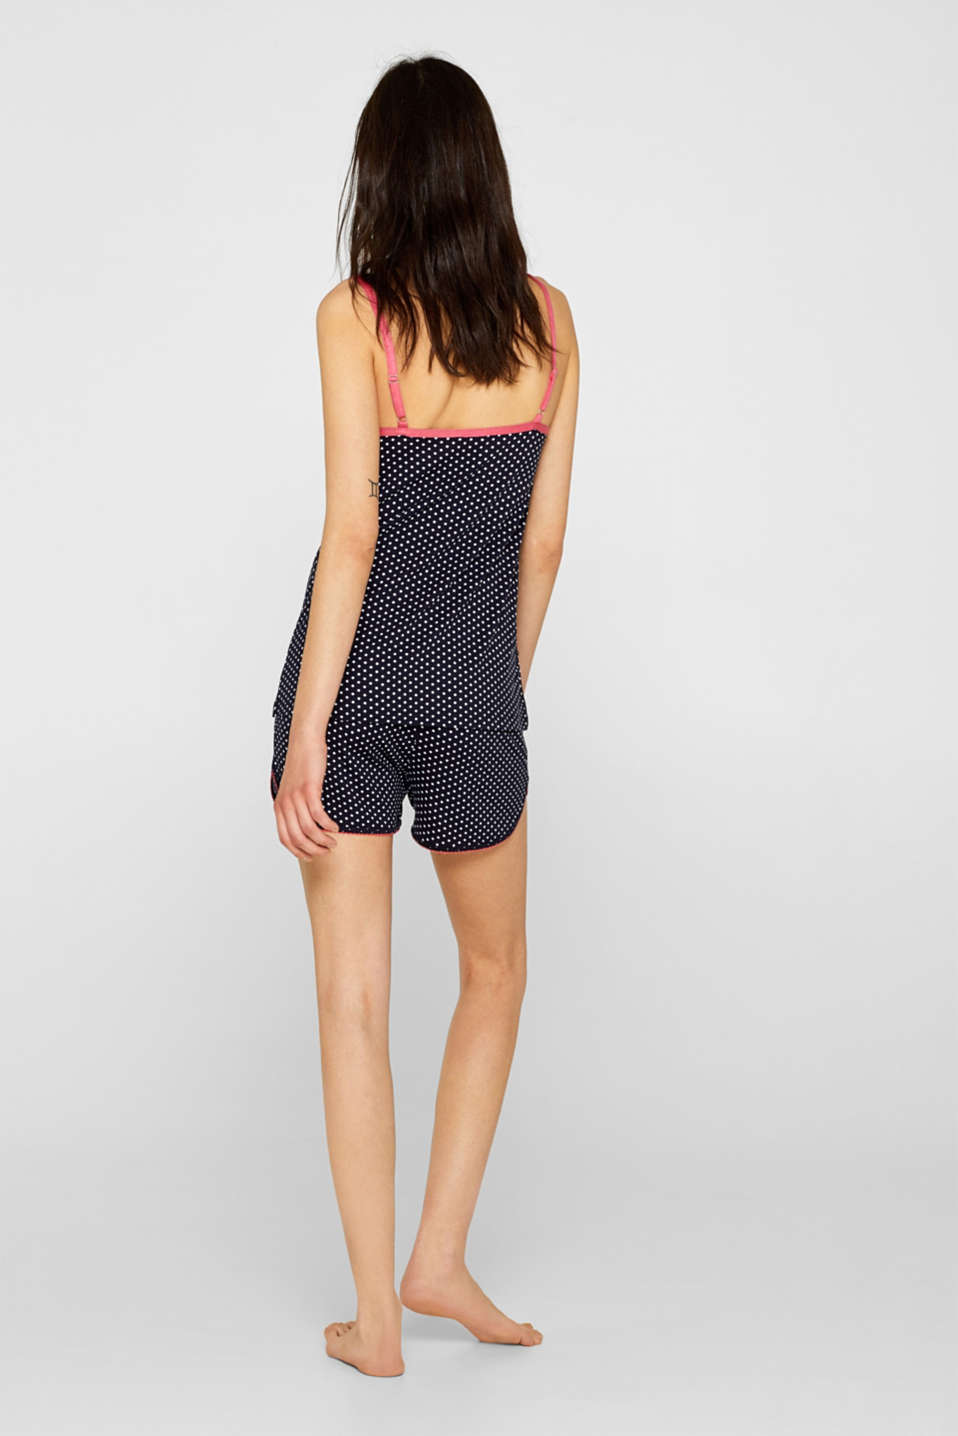 Stretch jersey top with two kinds of polka dots, NAVY, detail image number 1